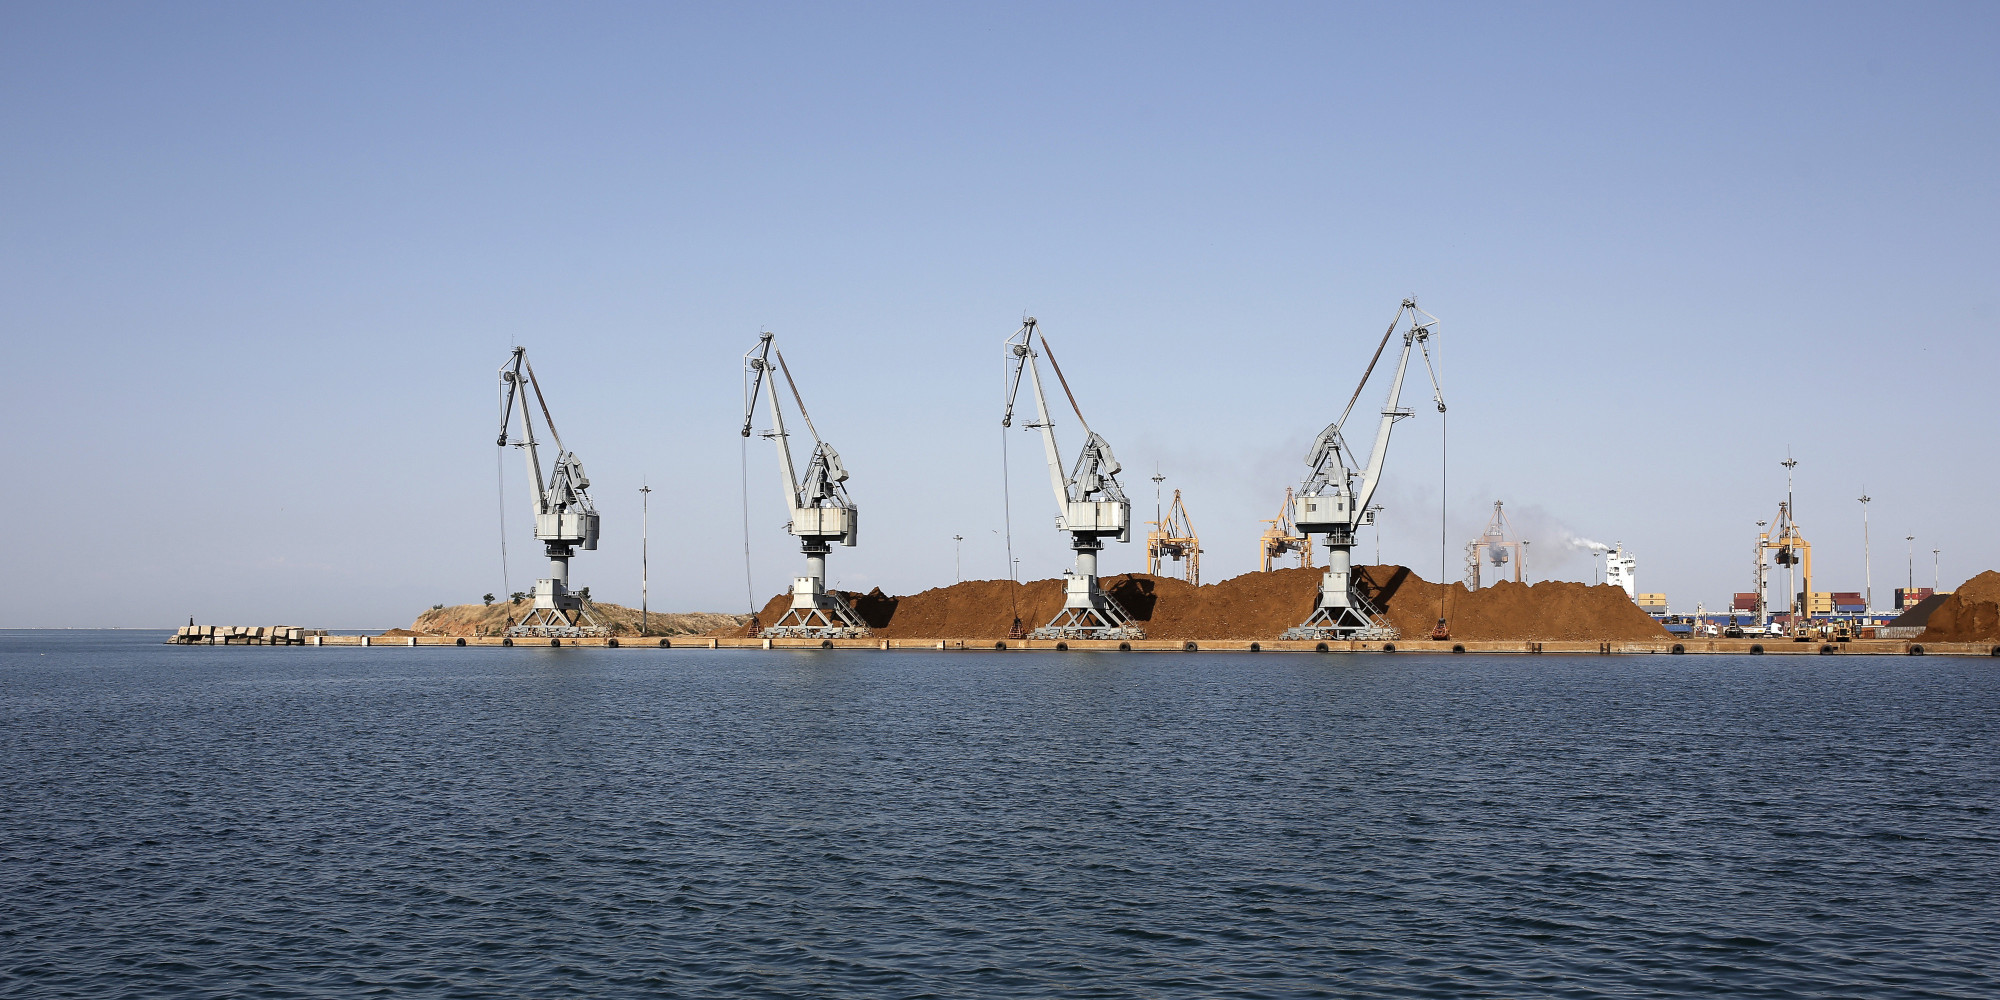 Shipping cranes stand beside supplies of unprocessed nickel ore on the dockside at Thessaloniki port, operated by Thessaloniki Port Authority SA, in Thessaloniki, Greece, on Thursday, July 16, 2015. A.P. Moeller-Maersk A/S wants to buy Greece's two biggest ports after Prime Minister Alexis Tsipras put them up for sale in his proposal of budget-enhancing measures submitted to creditors. Photographer: Konstantinos Tsakalidis/Bloomberg via Getty Images